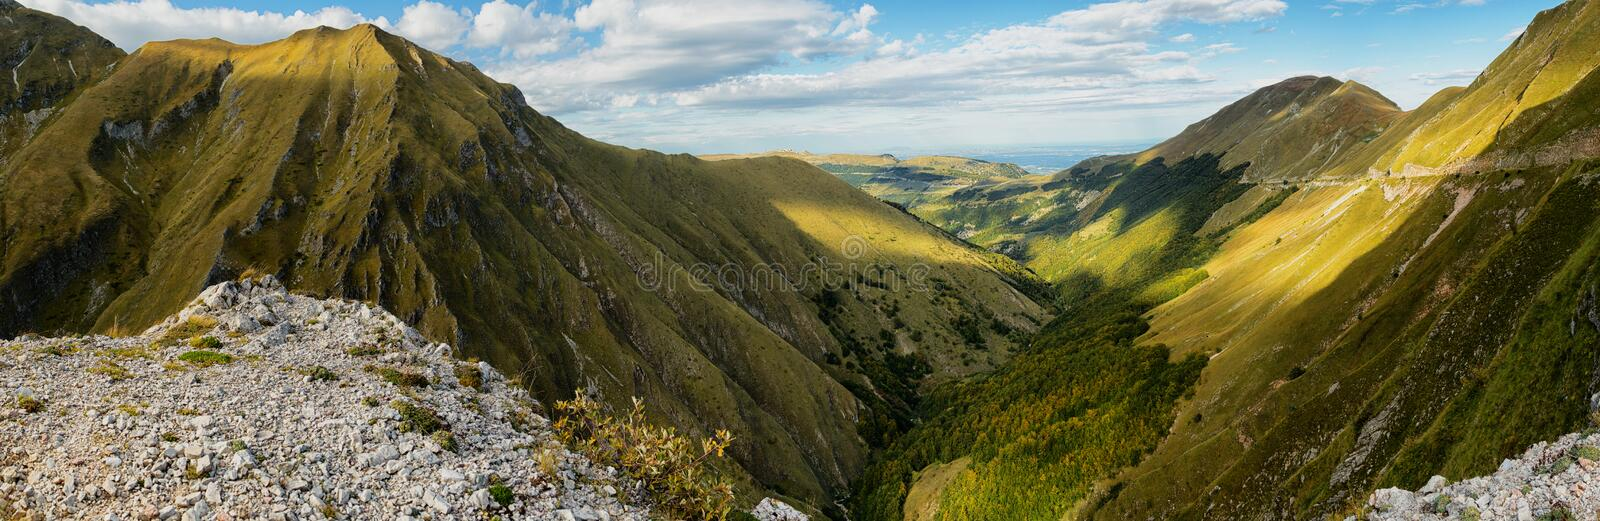 Valle del Fargno royalty free stock images